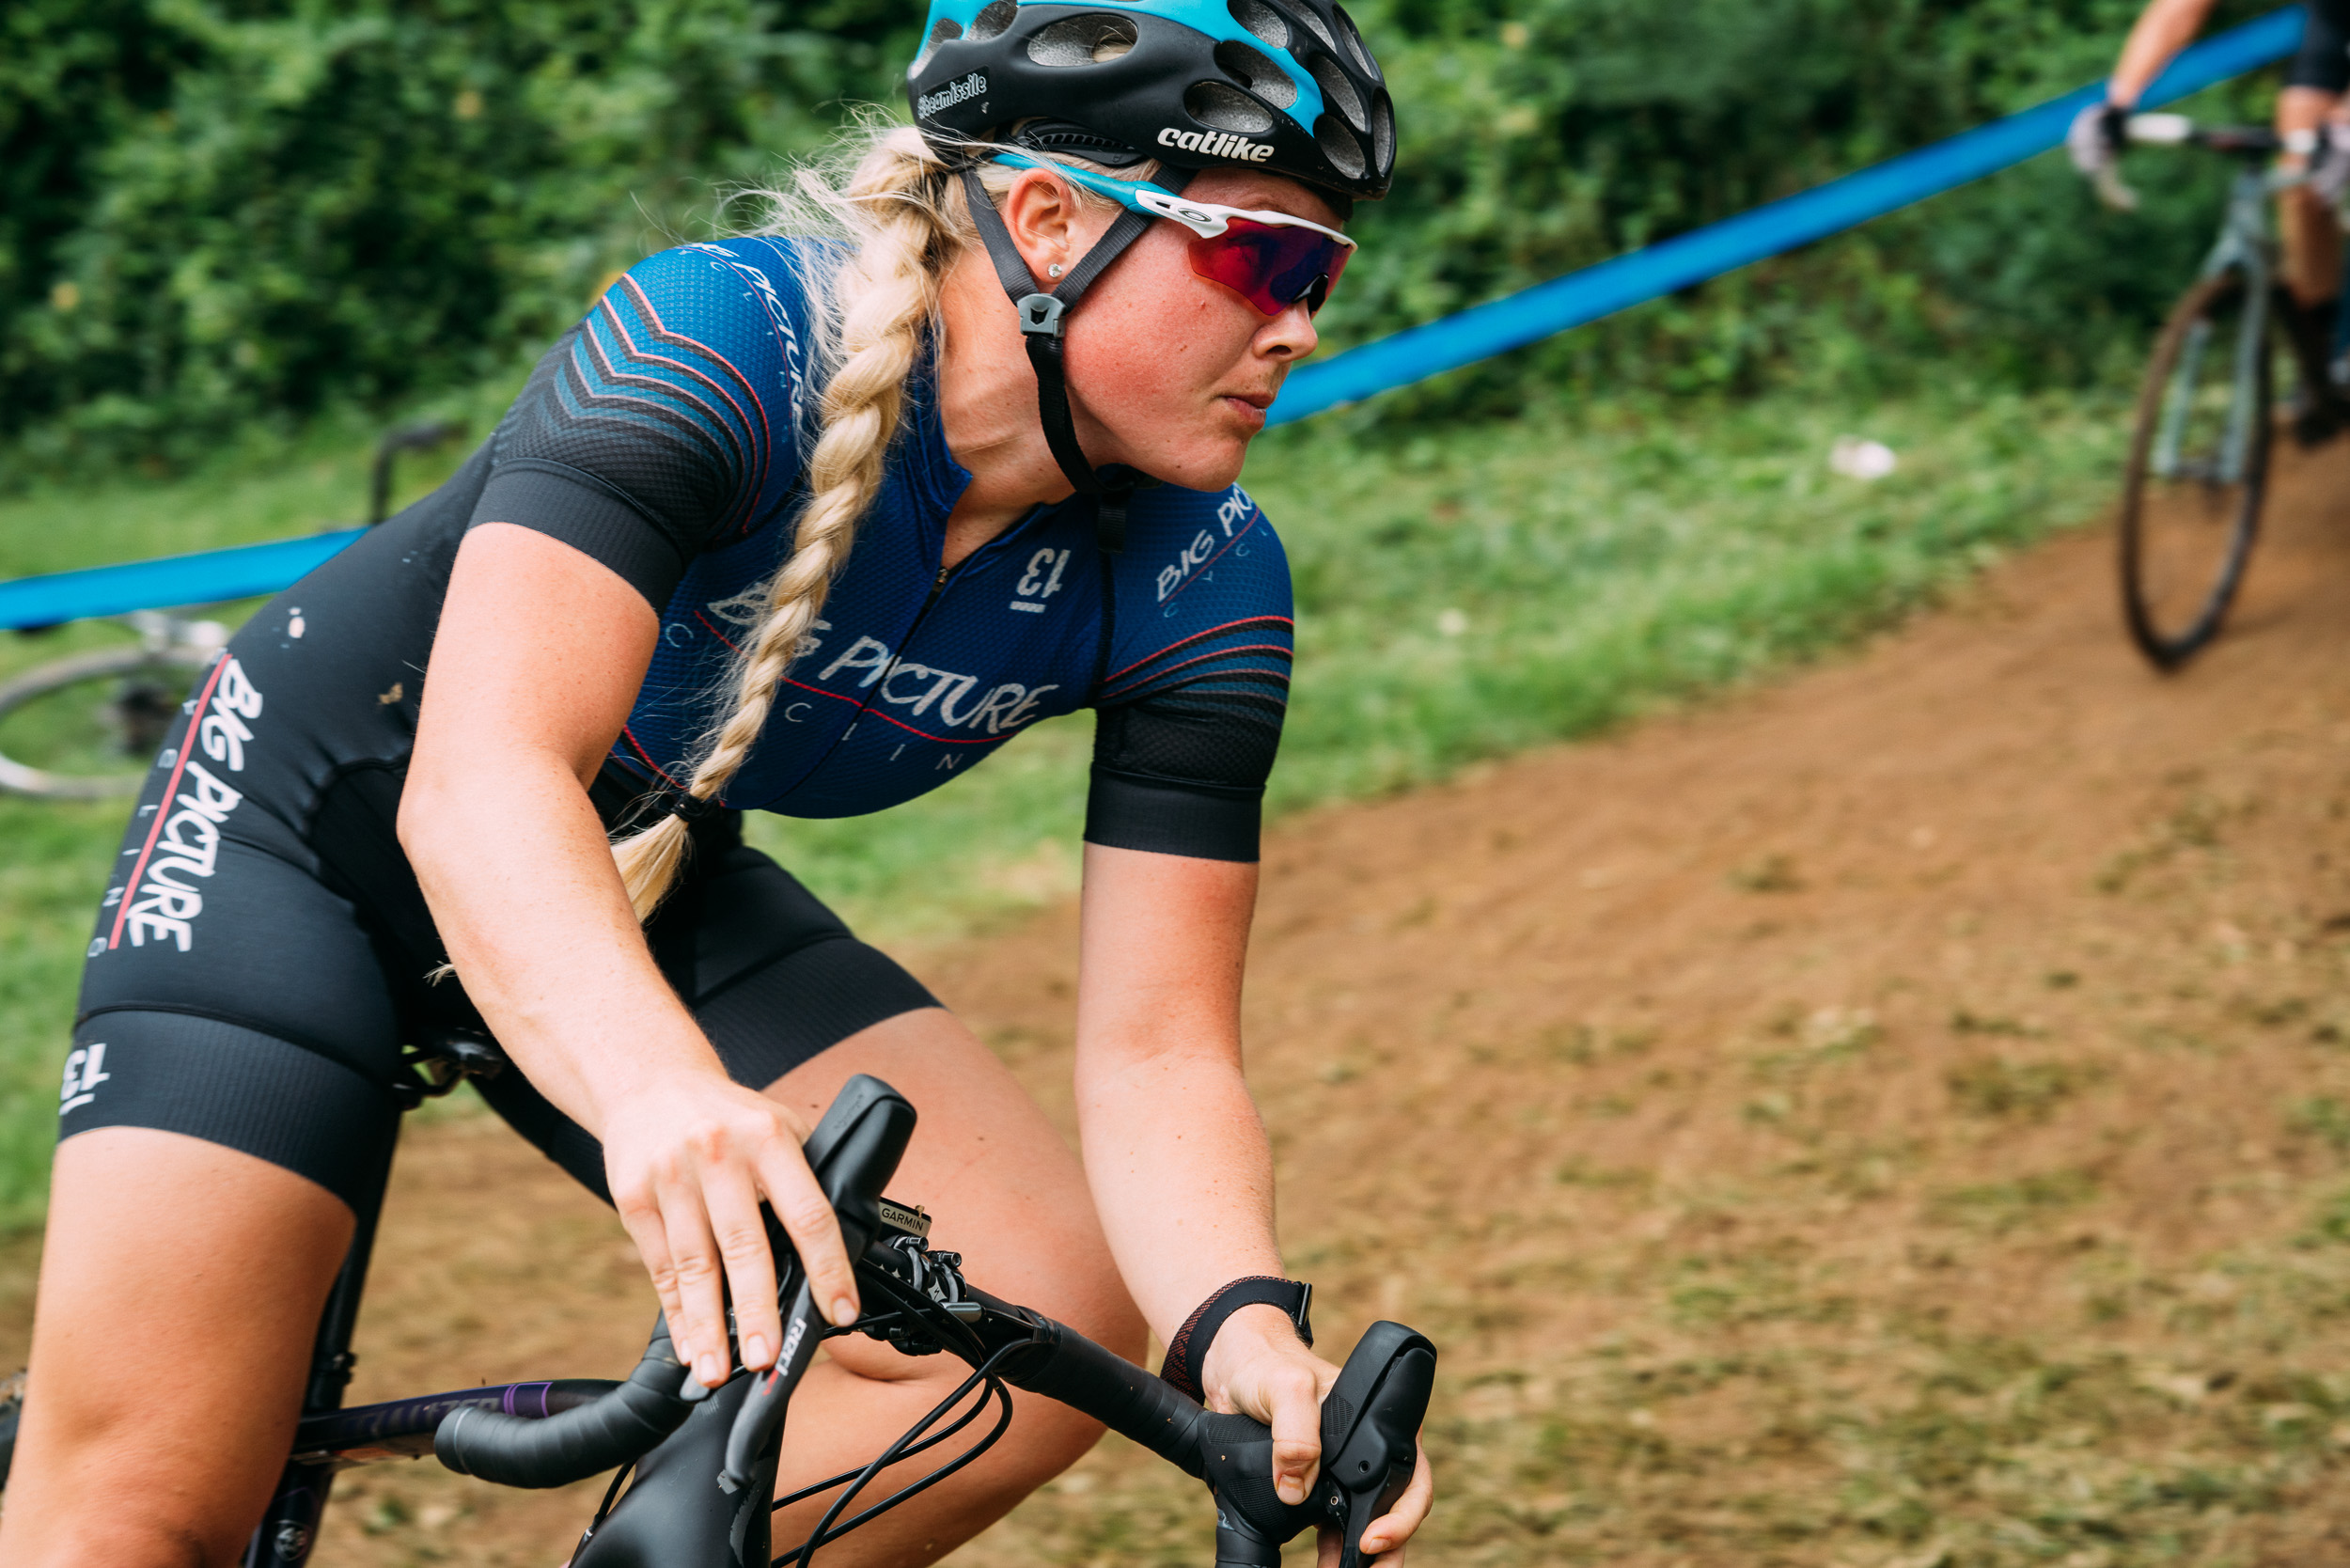 photo-rhetoric-to-be-determined-nittany-cyclocross-1060.jpg